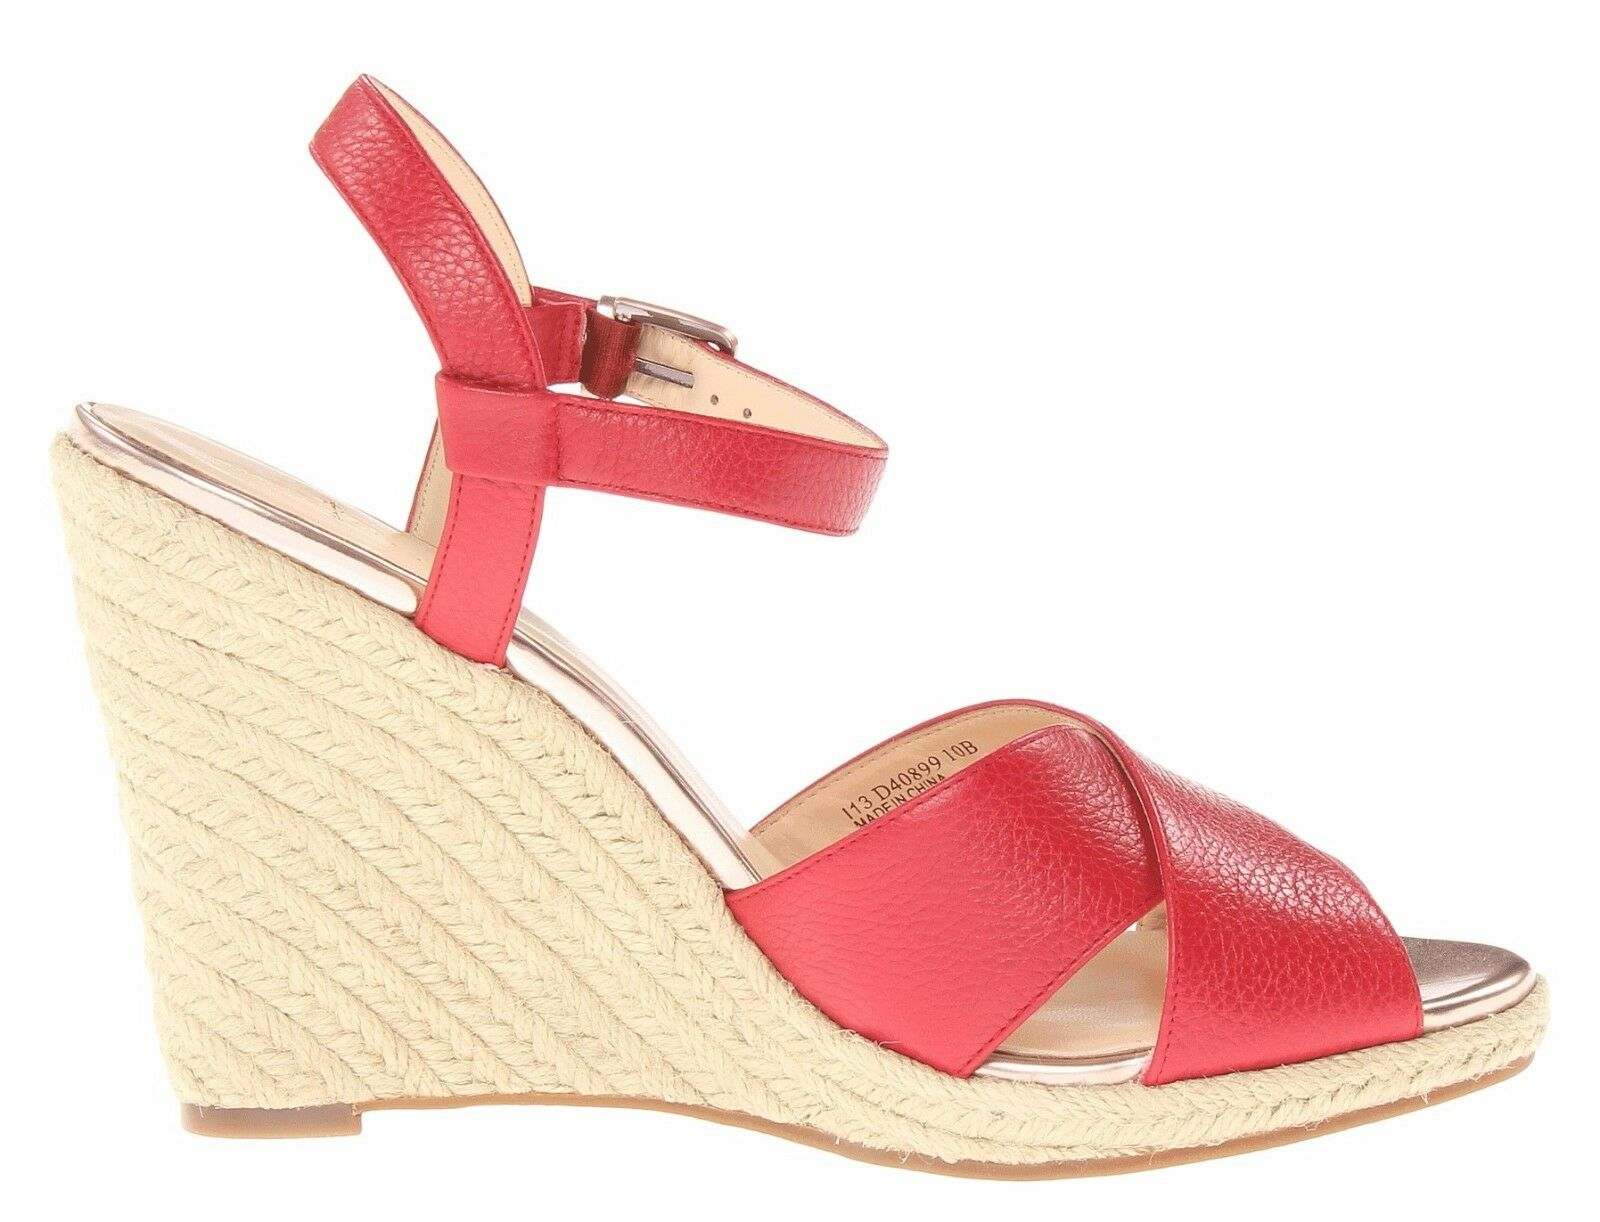 Cole Haan HART Wedge Wedge Wedge Leather Criss Cross Straps Sandal Tango Red 7.5 New 096383